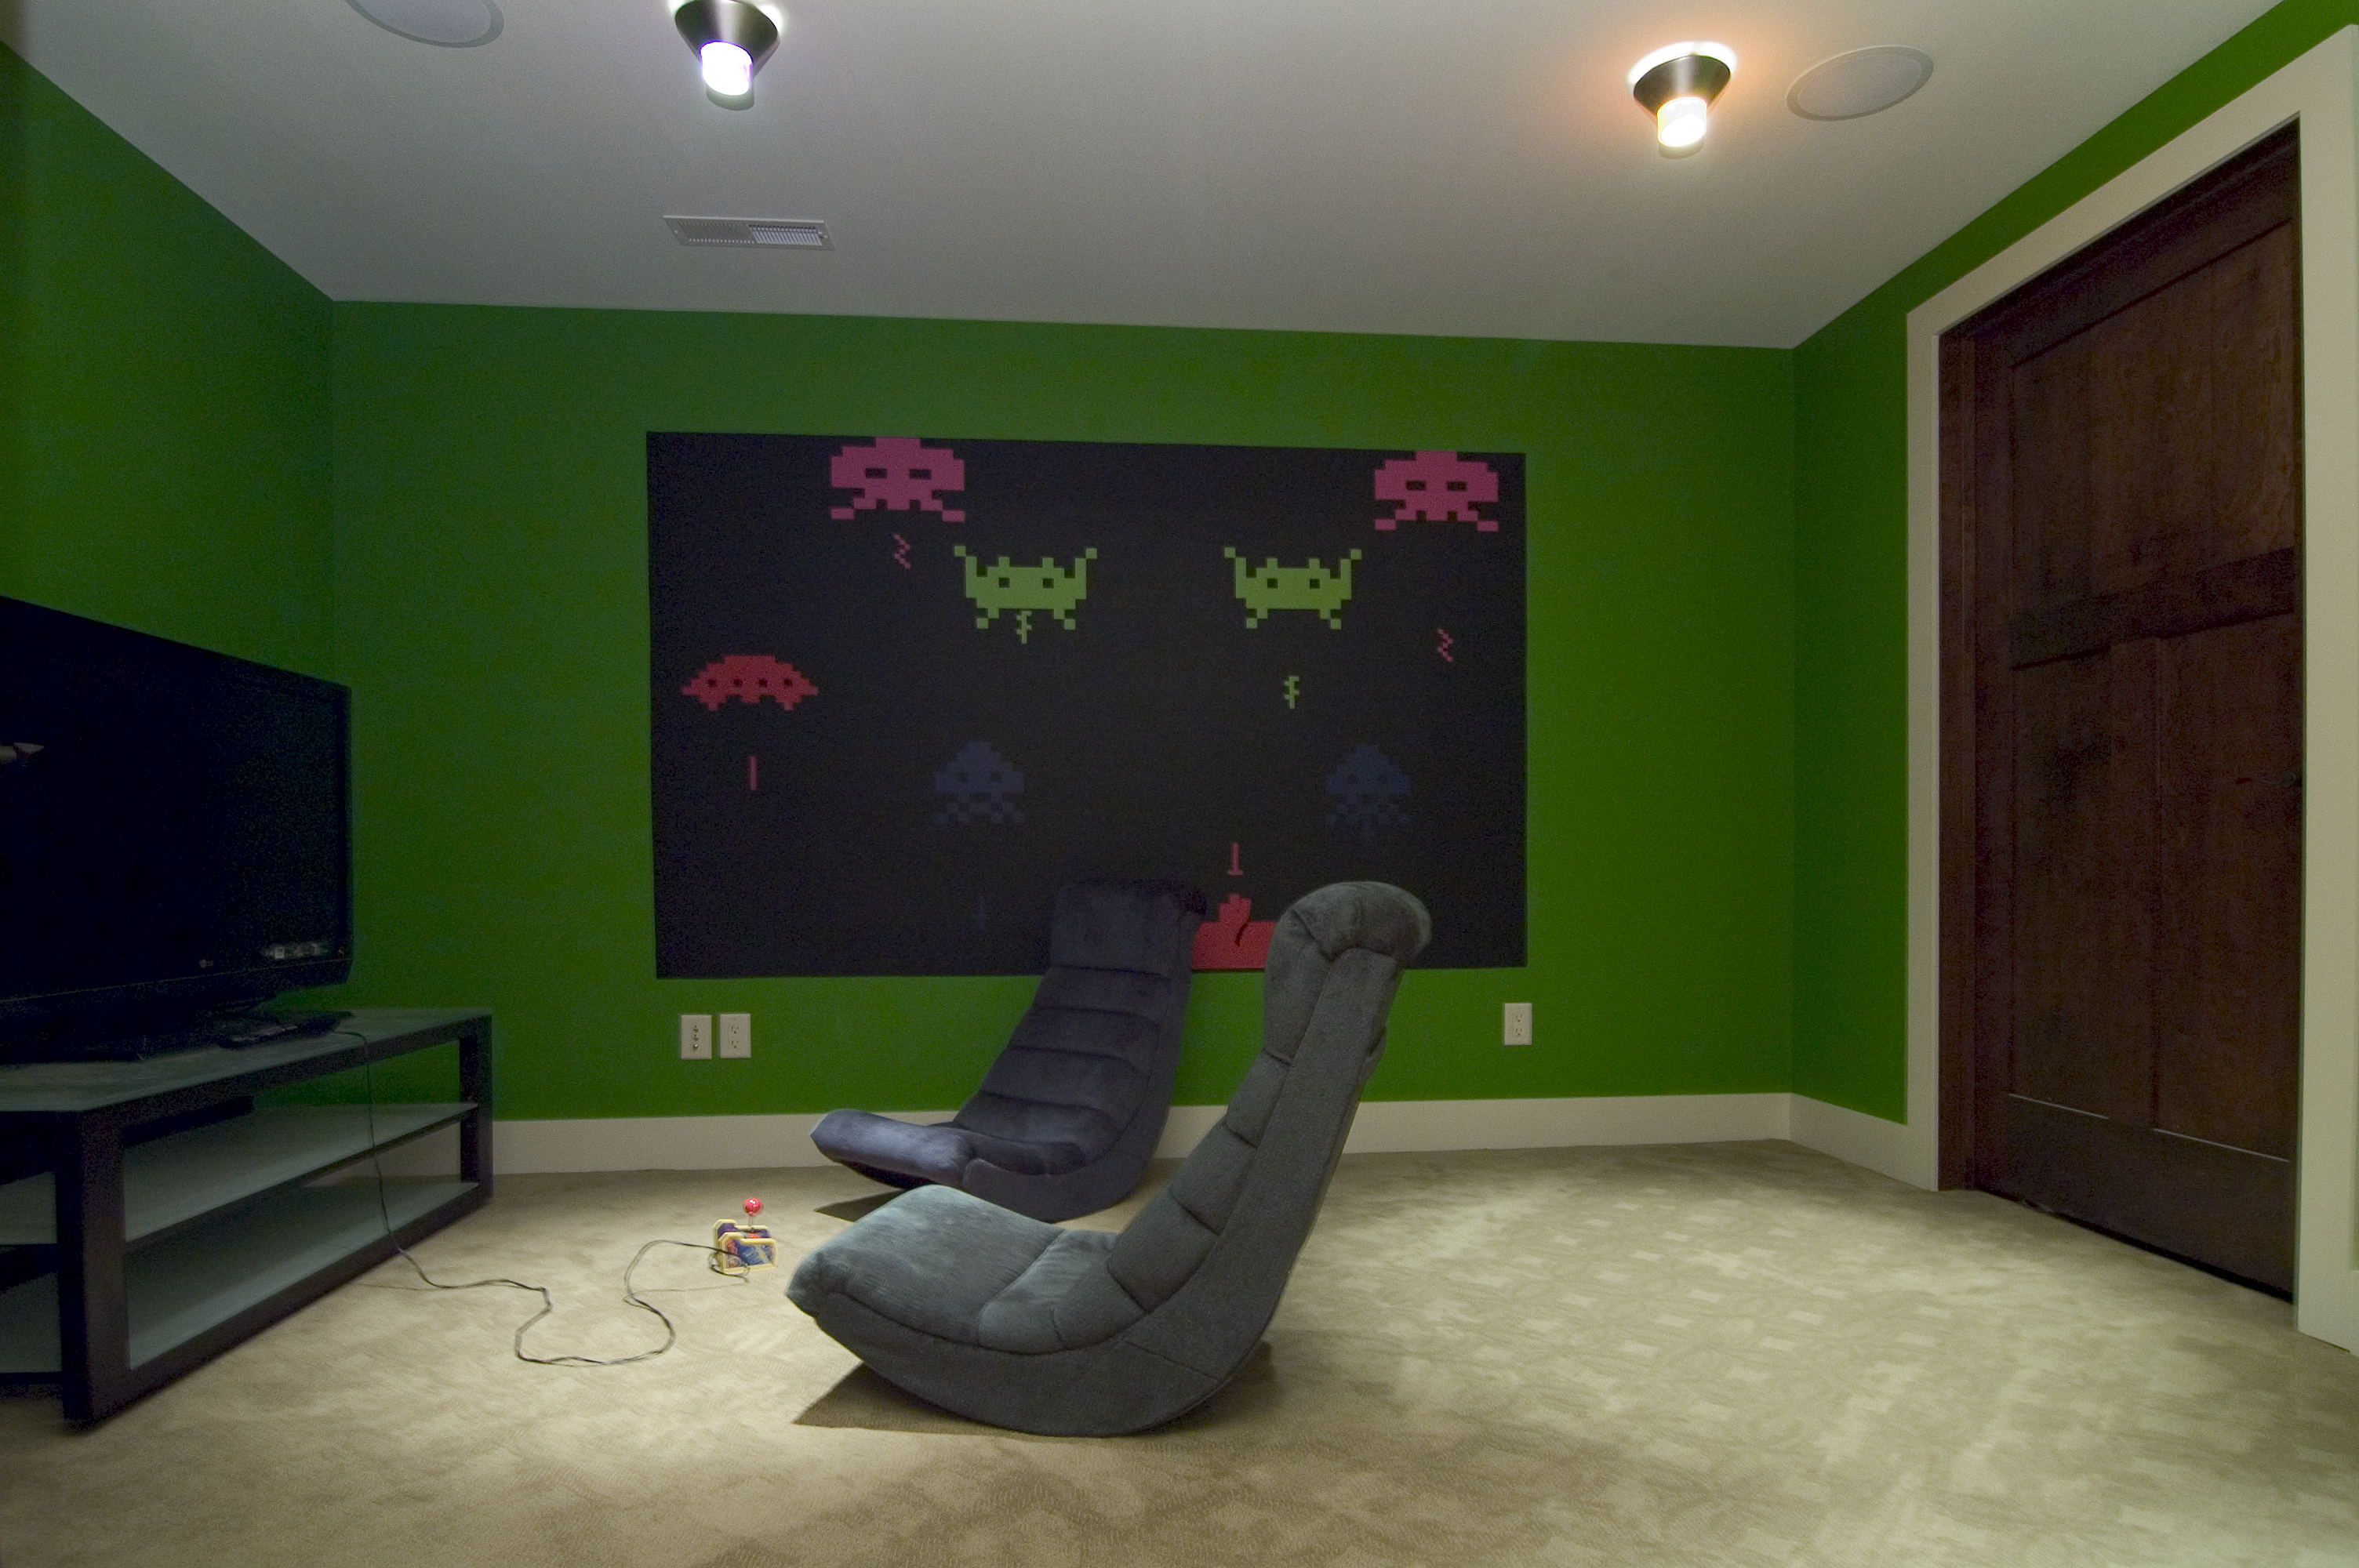 Video Game Room-Atari Wall Decals